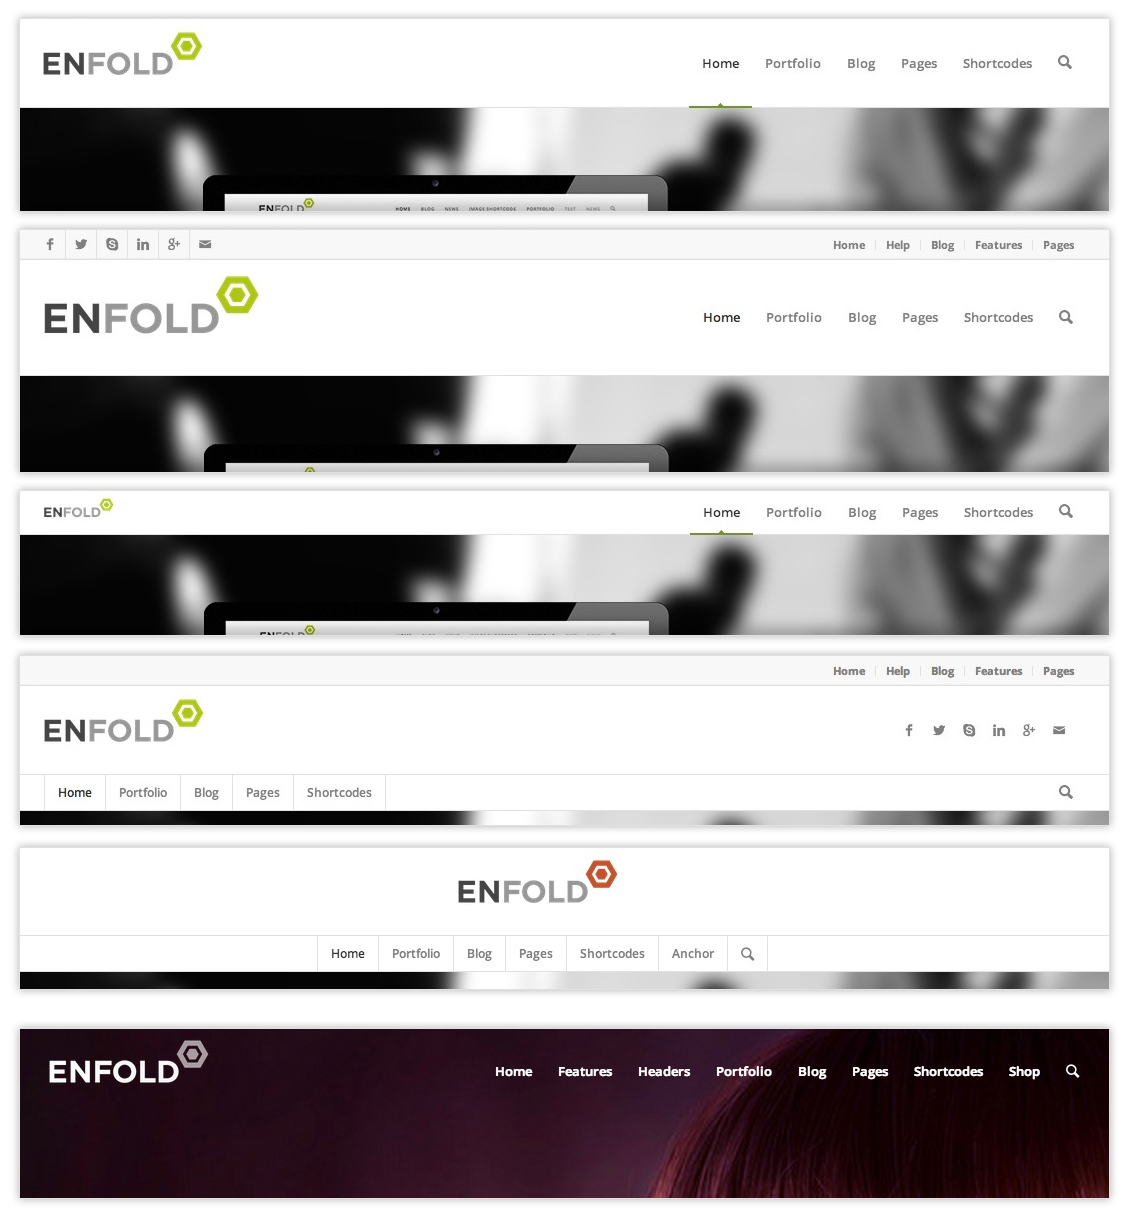 Enfold header options